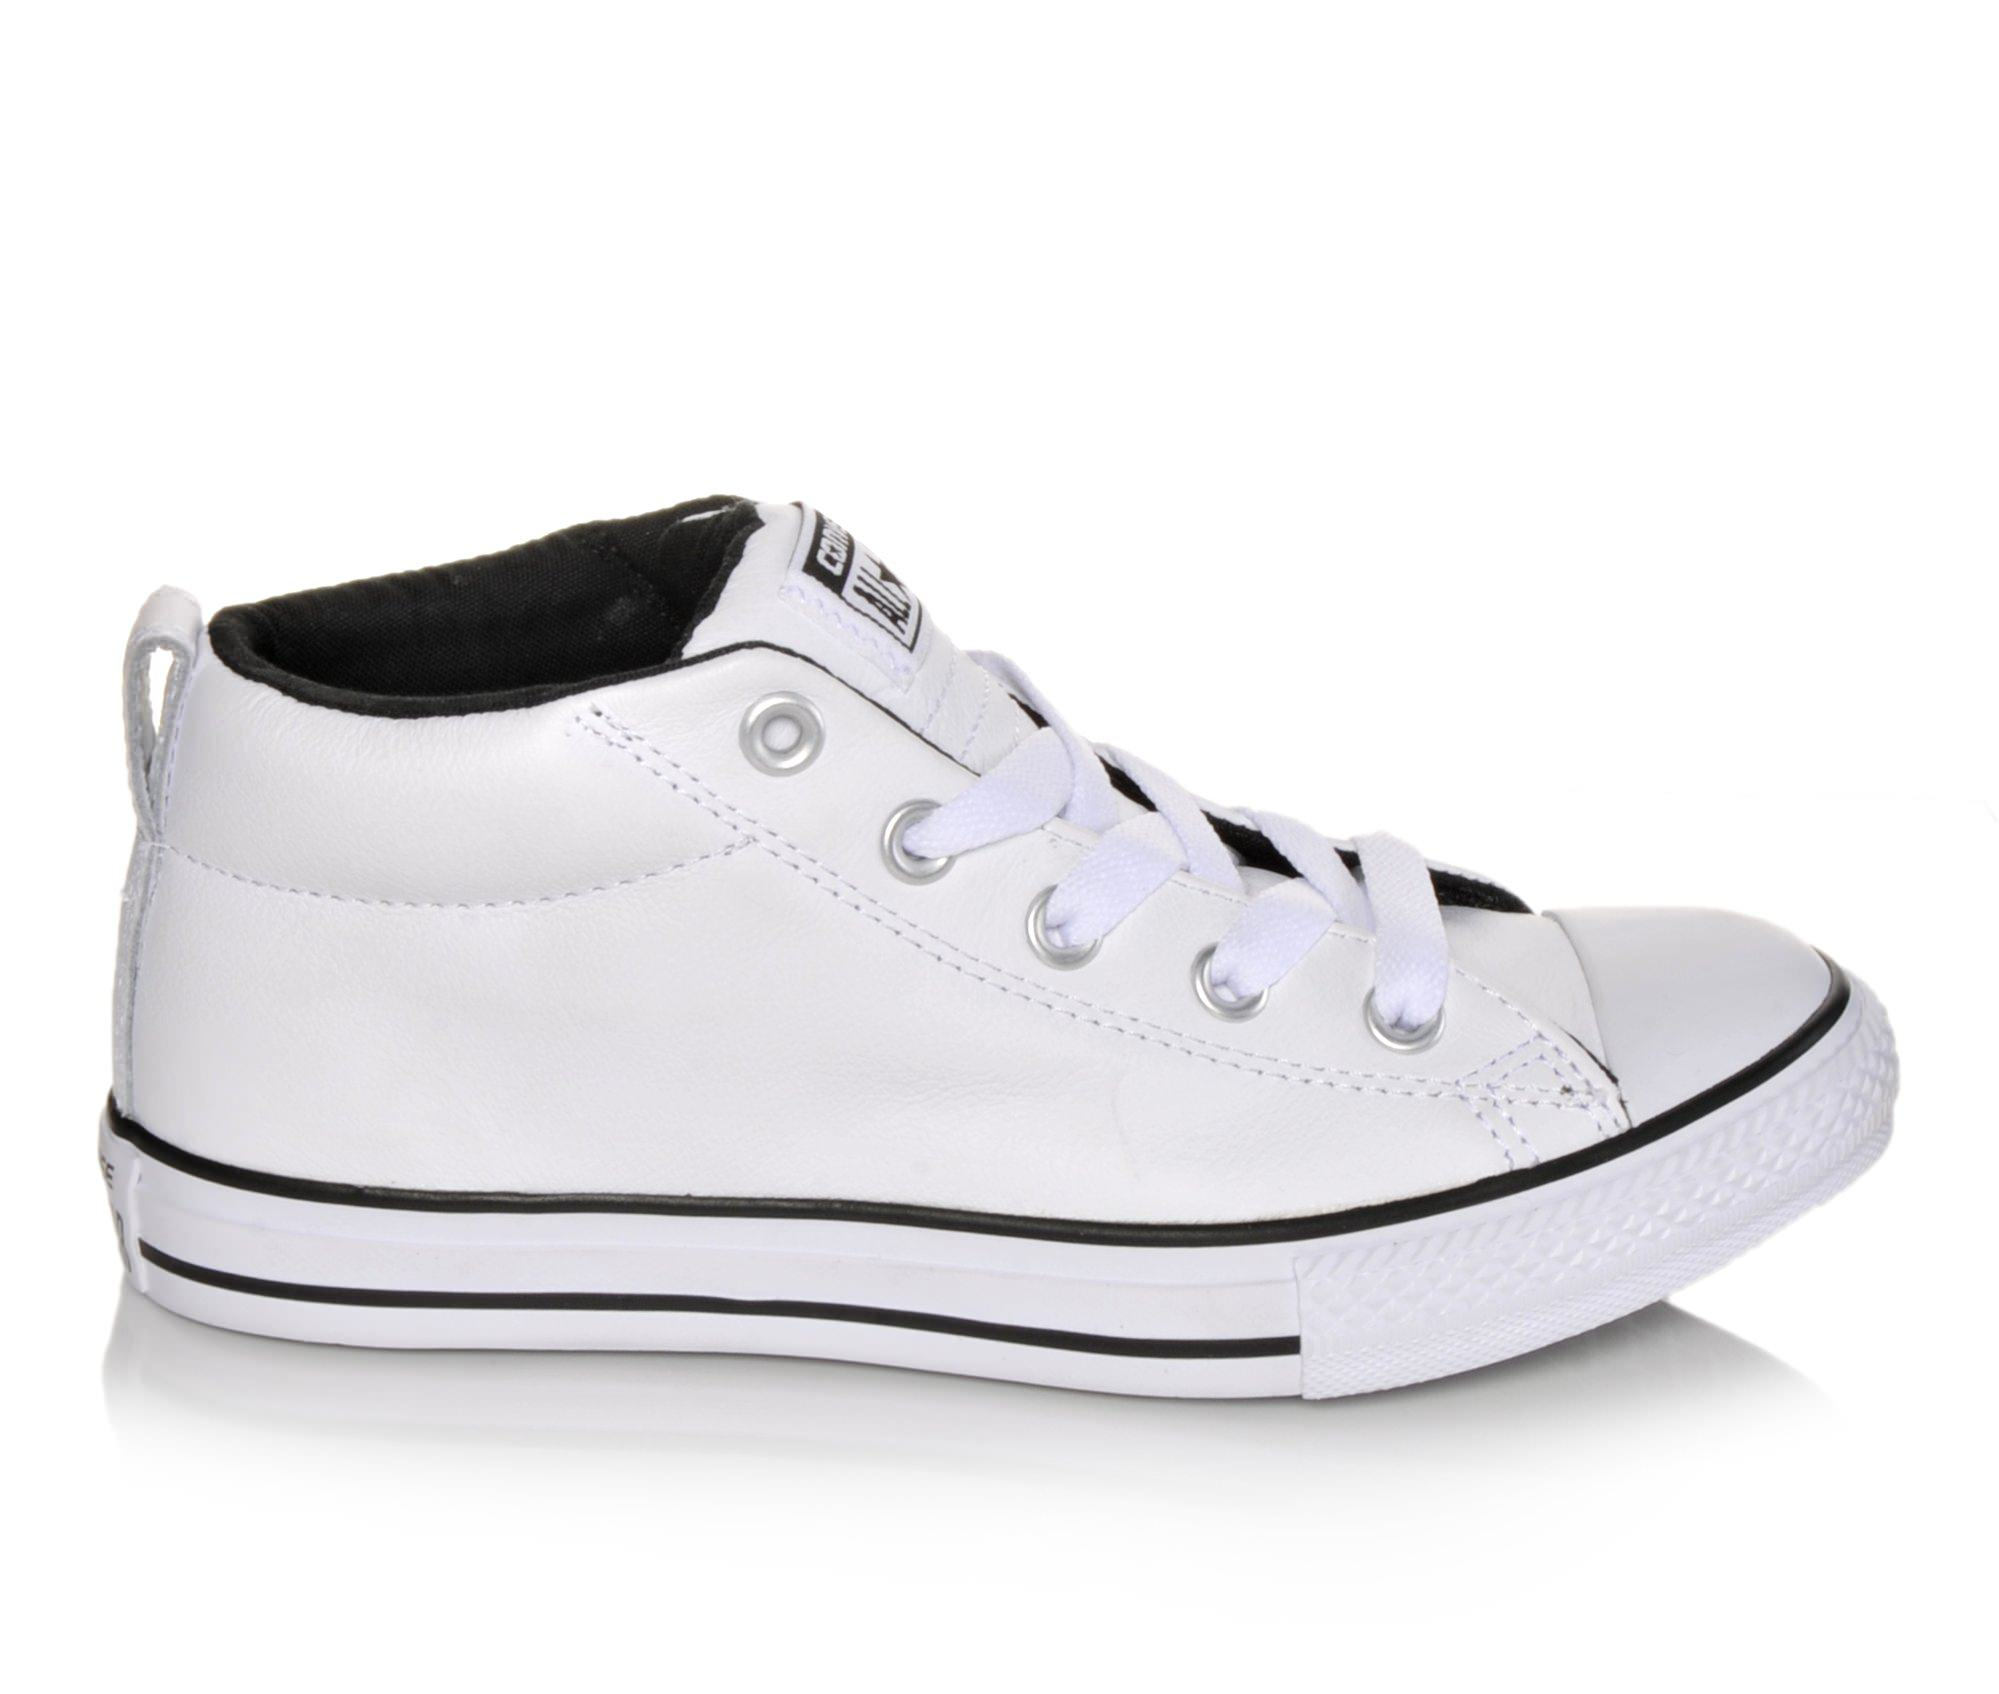 Boys' Converse Chuck Taylor All Star Street Mid Oxford Shoes (White)